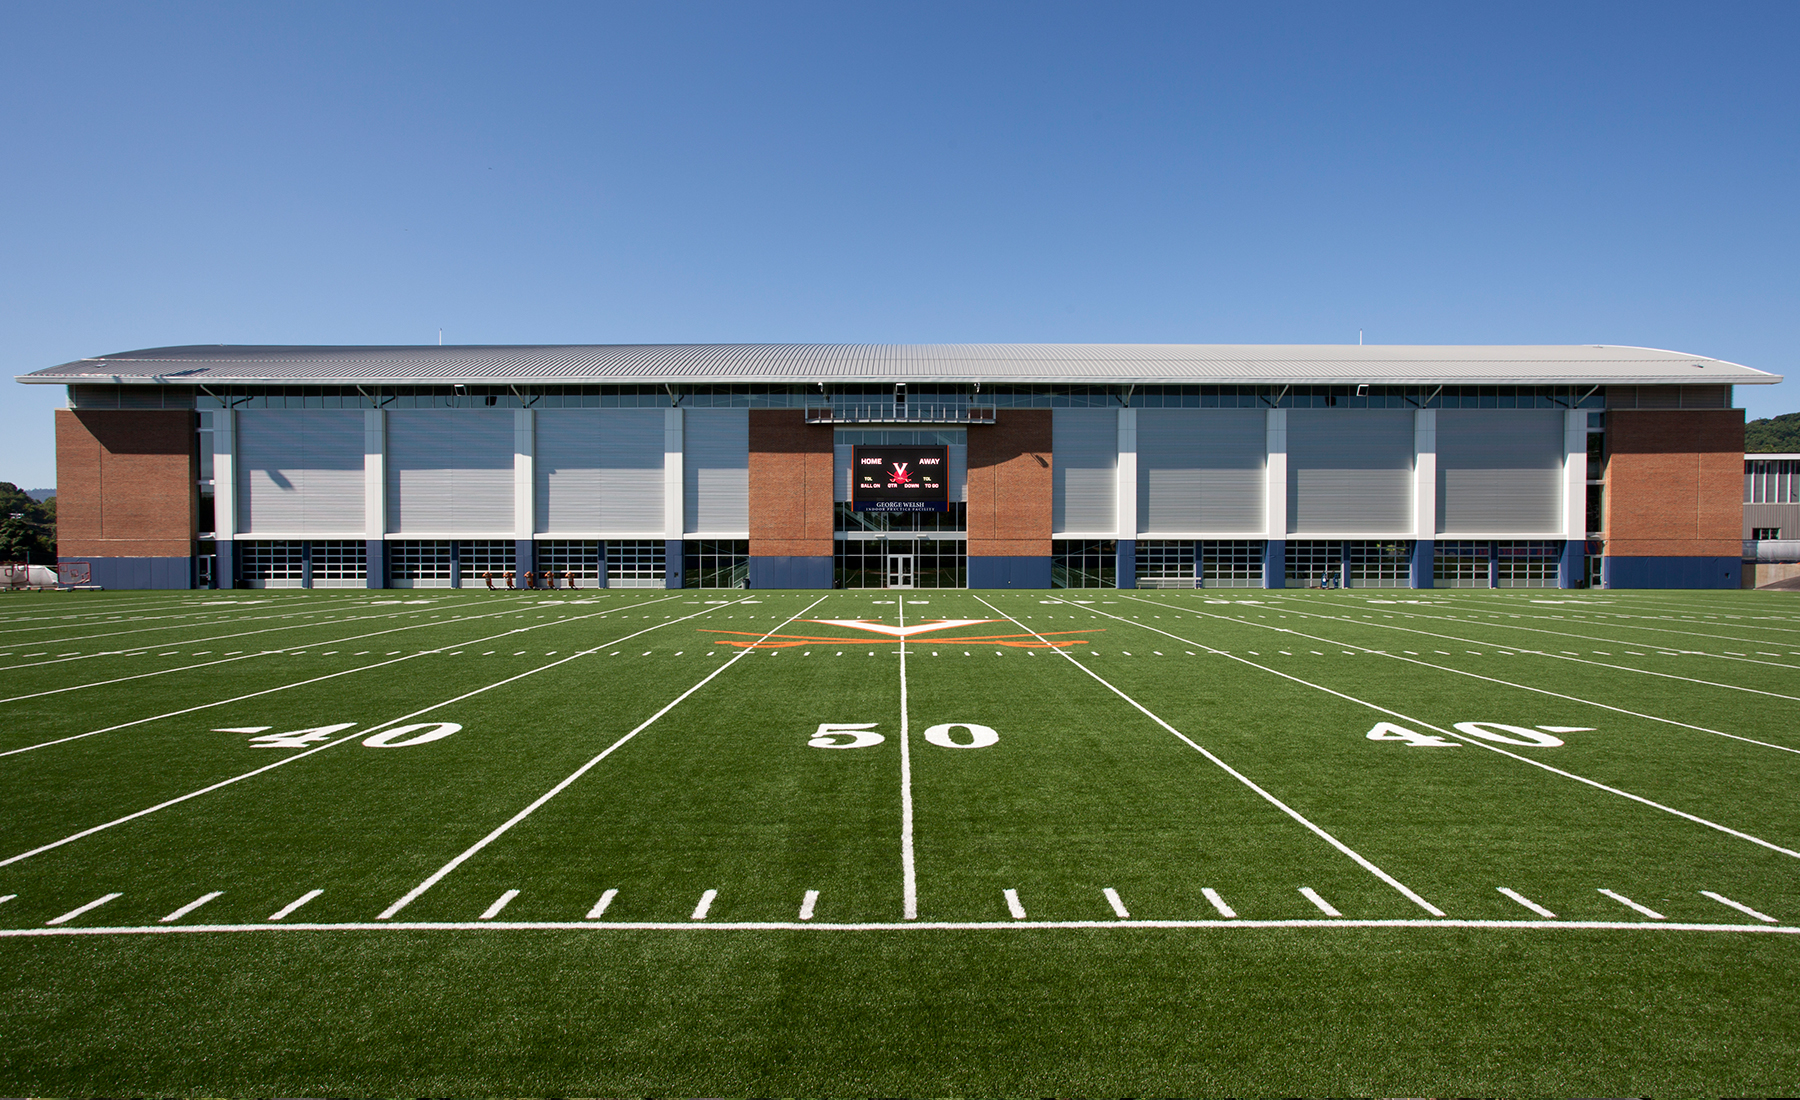 The Fieldhouse was sited on an existing football practice field to take advantage of adjacent locker rooms, offices, and other support facilities.